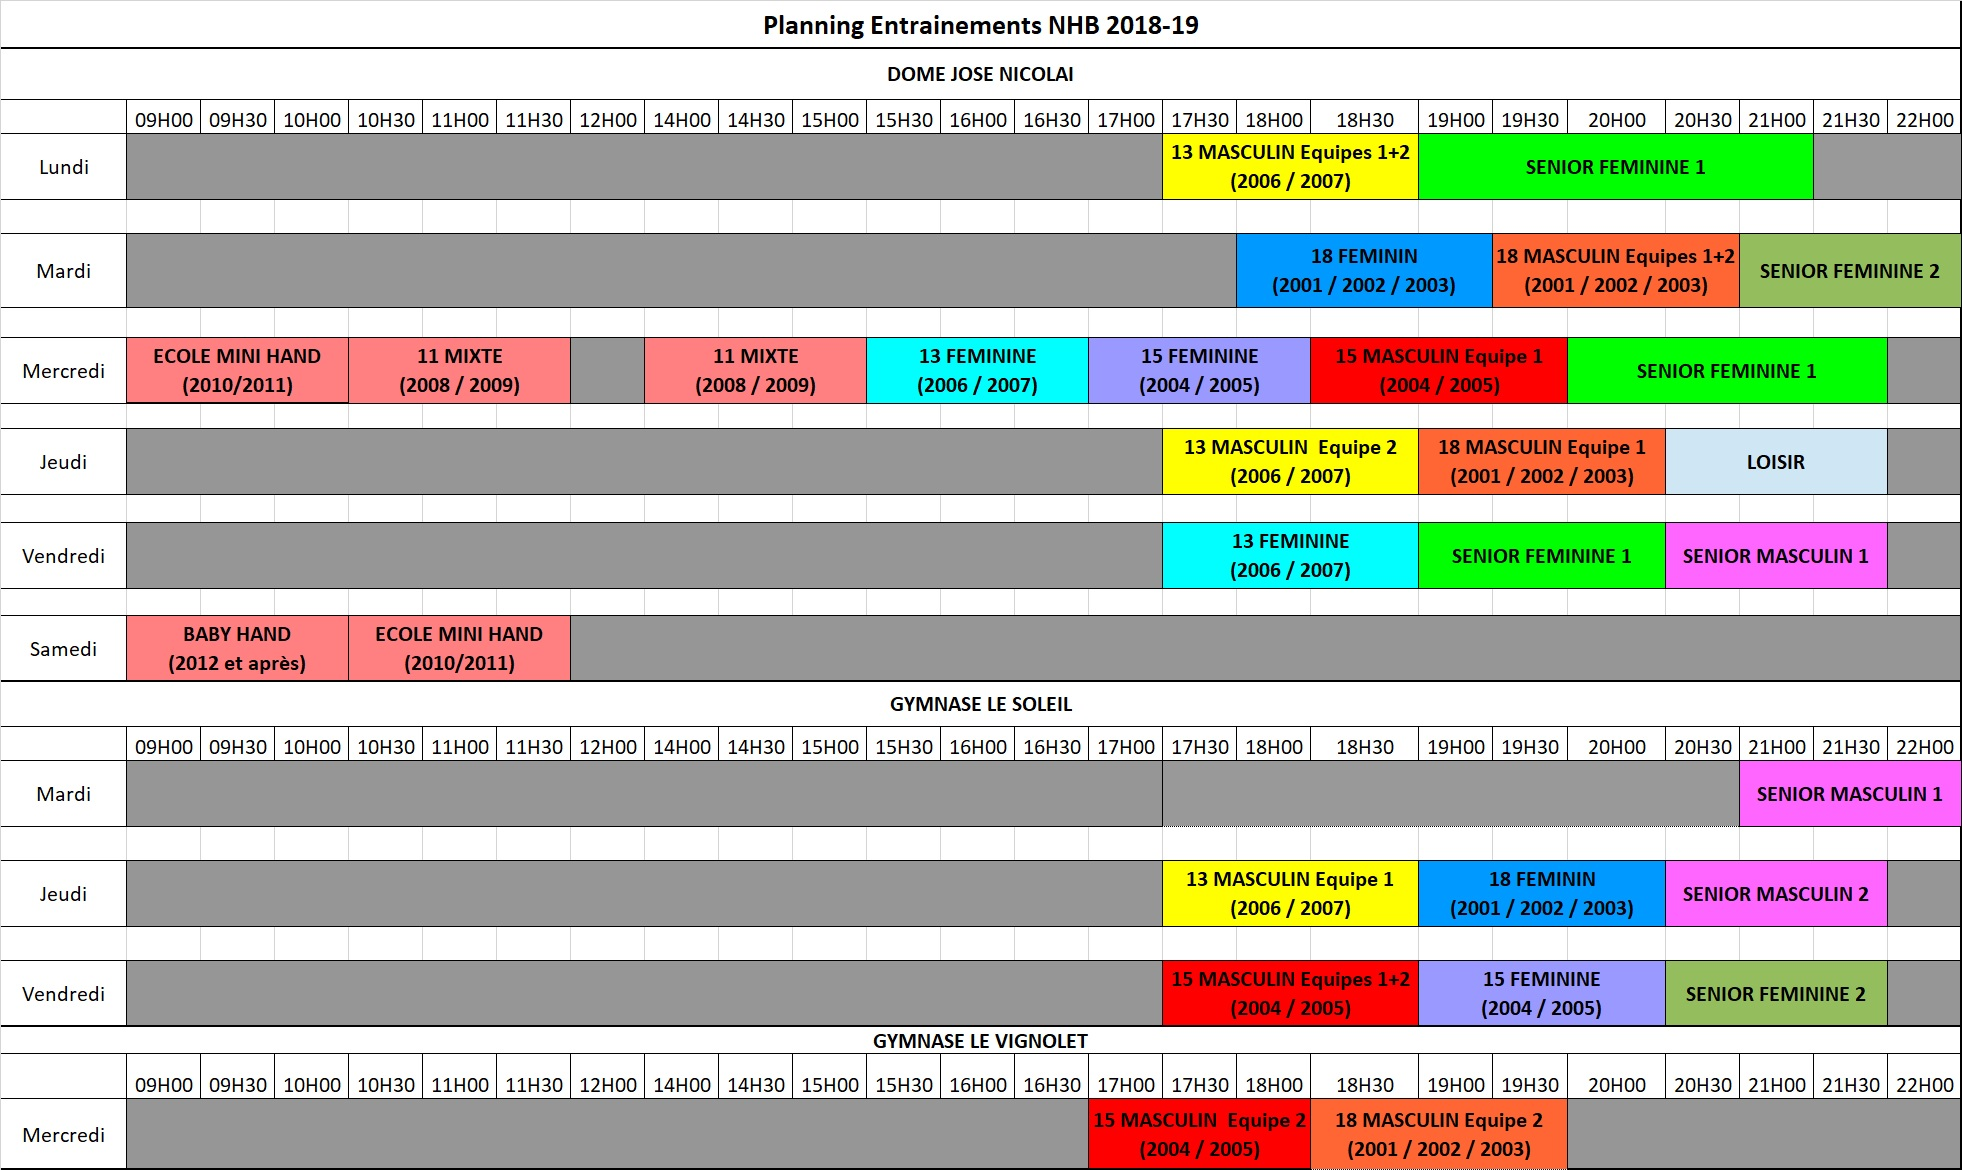 planning entrainements NHB 18 19